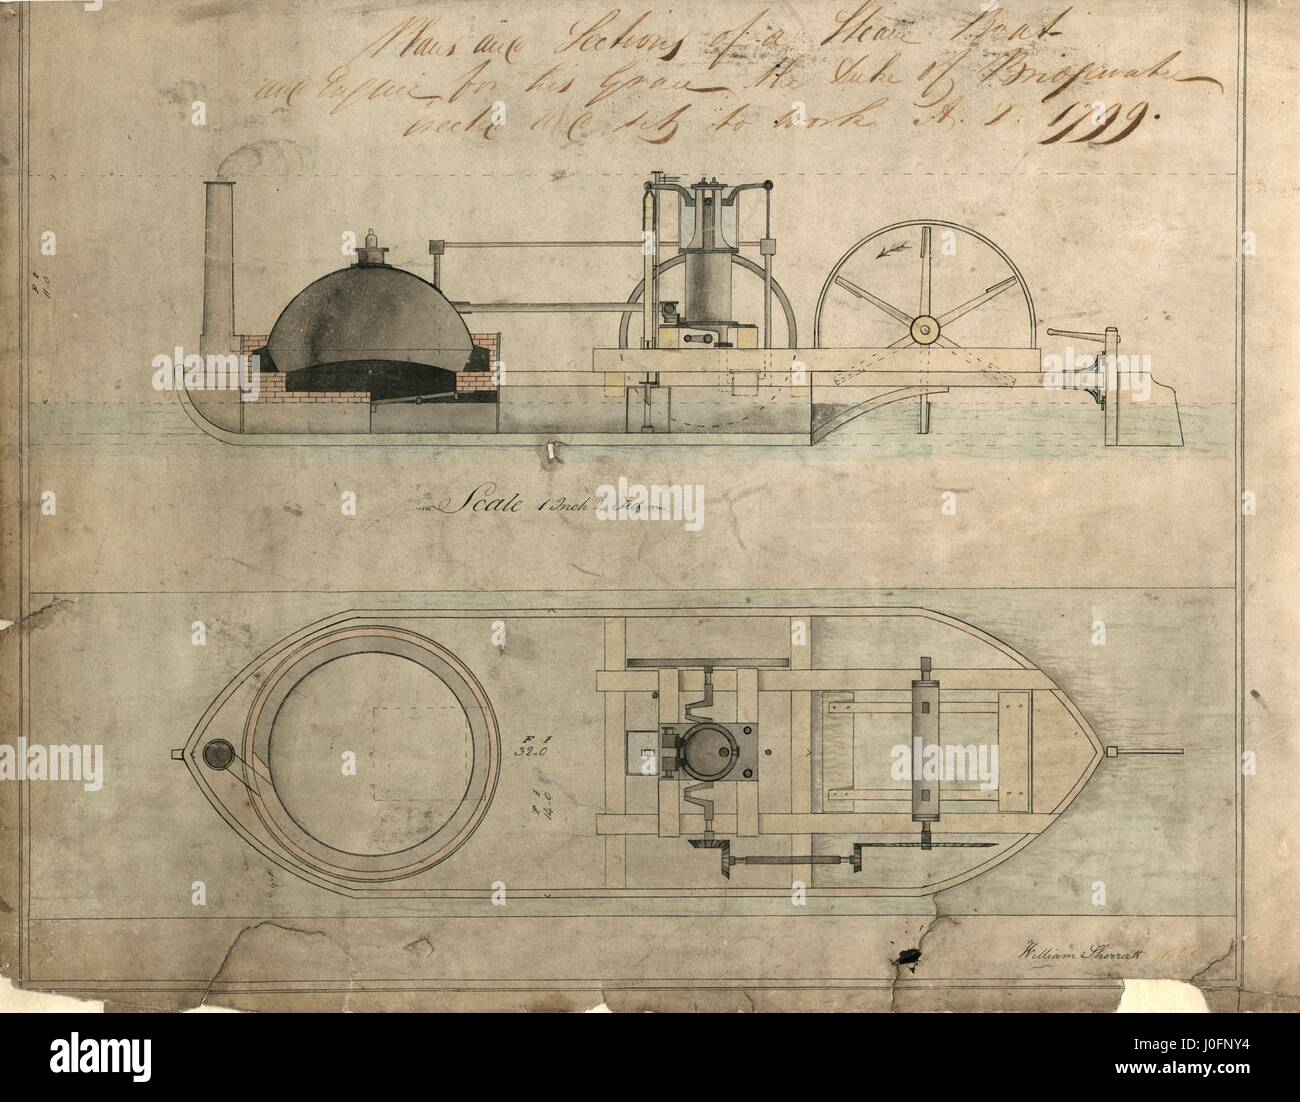 Sketch of a steamboat for the Bridgewater canal, 1799 - Stock Image